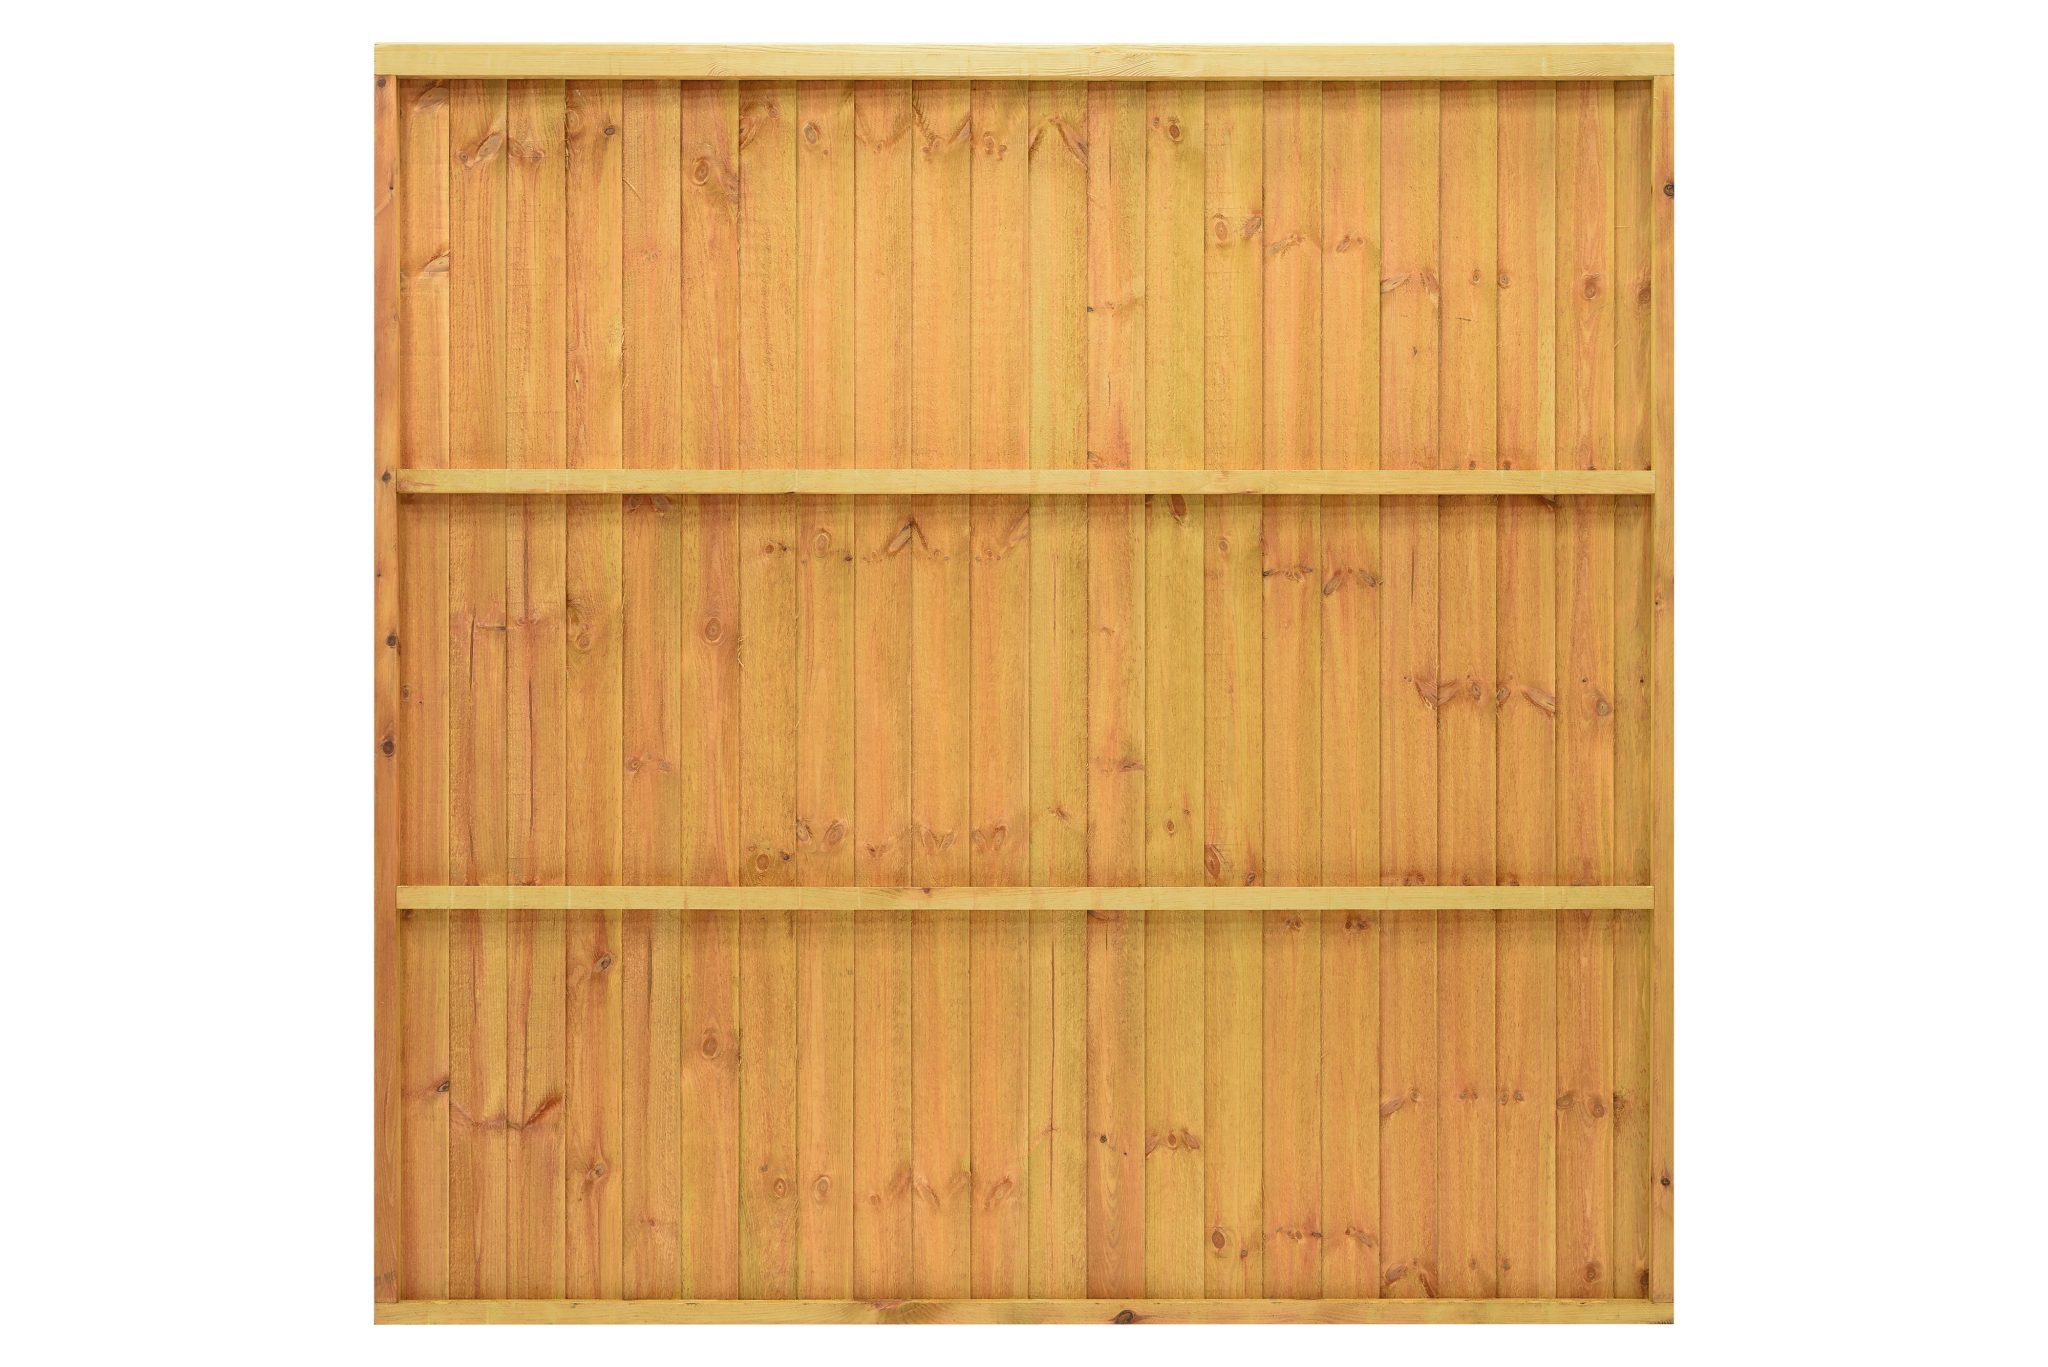 A heavy duty panel made with 100mm featheredge boards and capping rail fixed to a sturdy frame. The Standard Featheredge Panel is available in pressure-treated golden brown or pressure-treated green to protect the timber from wood rot.